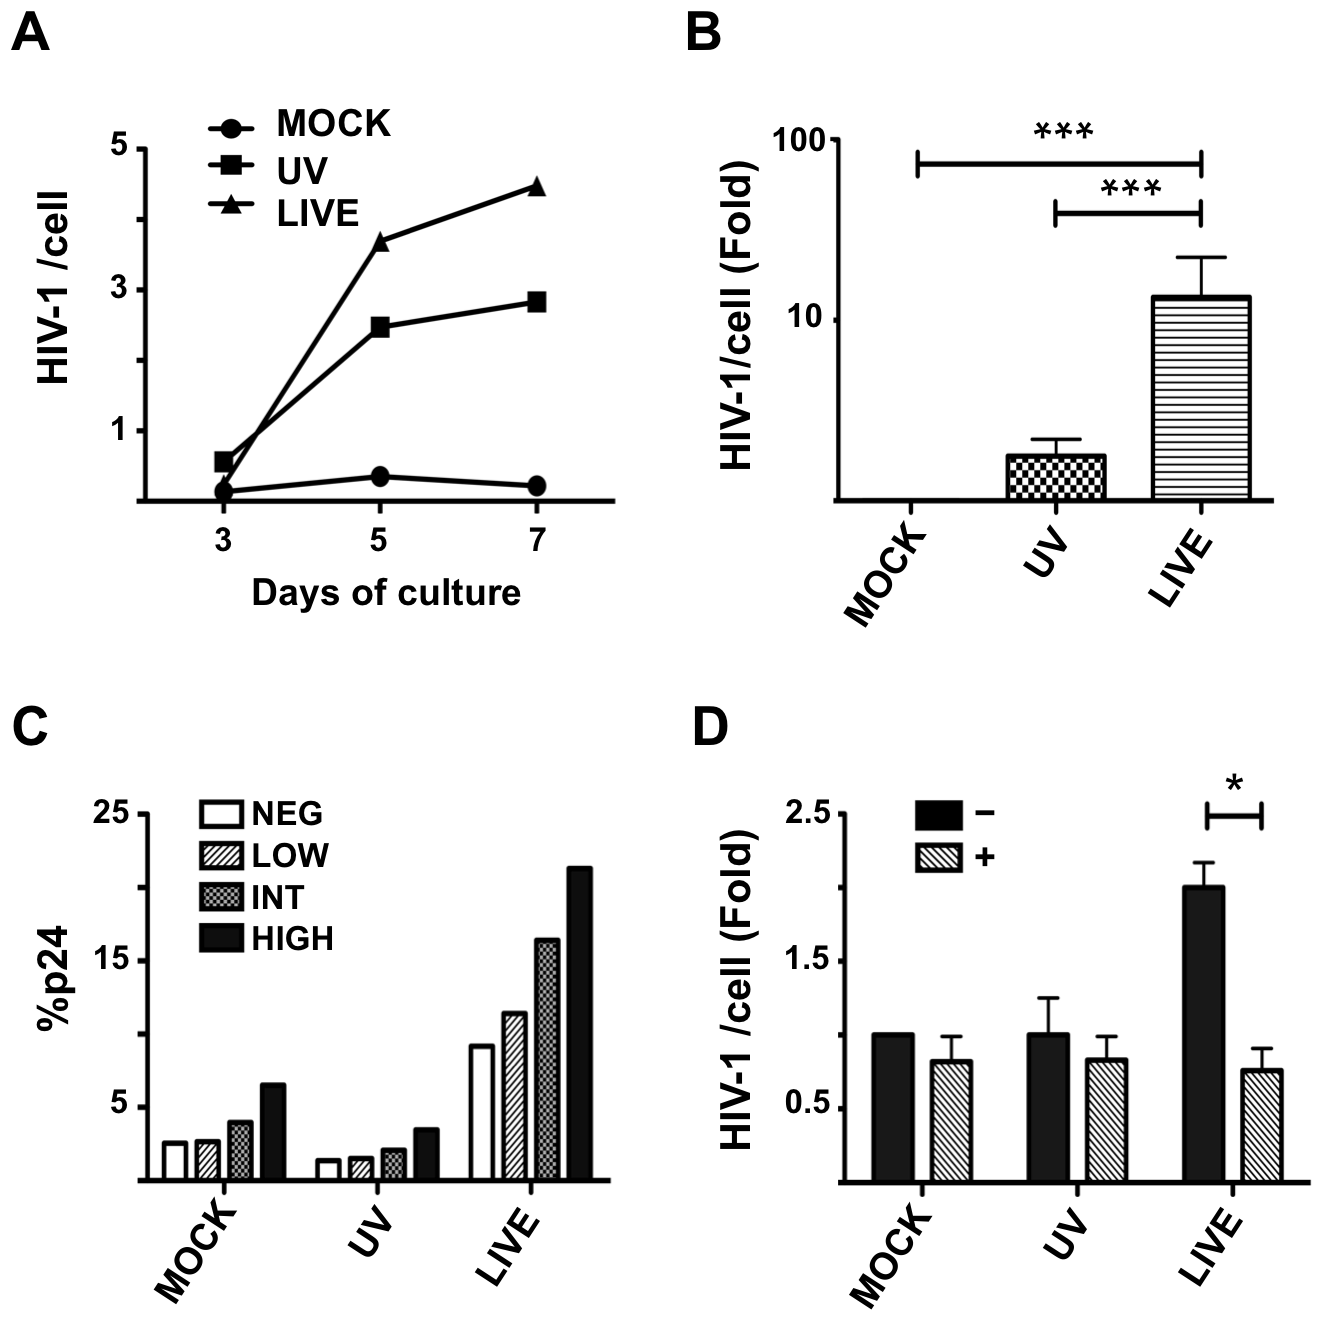 HSV-2 infection enhances HIV-1 replication in a RA-dependent manner.